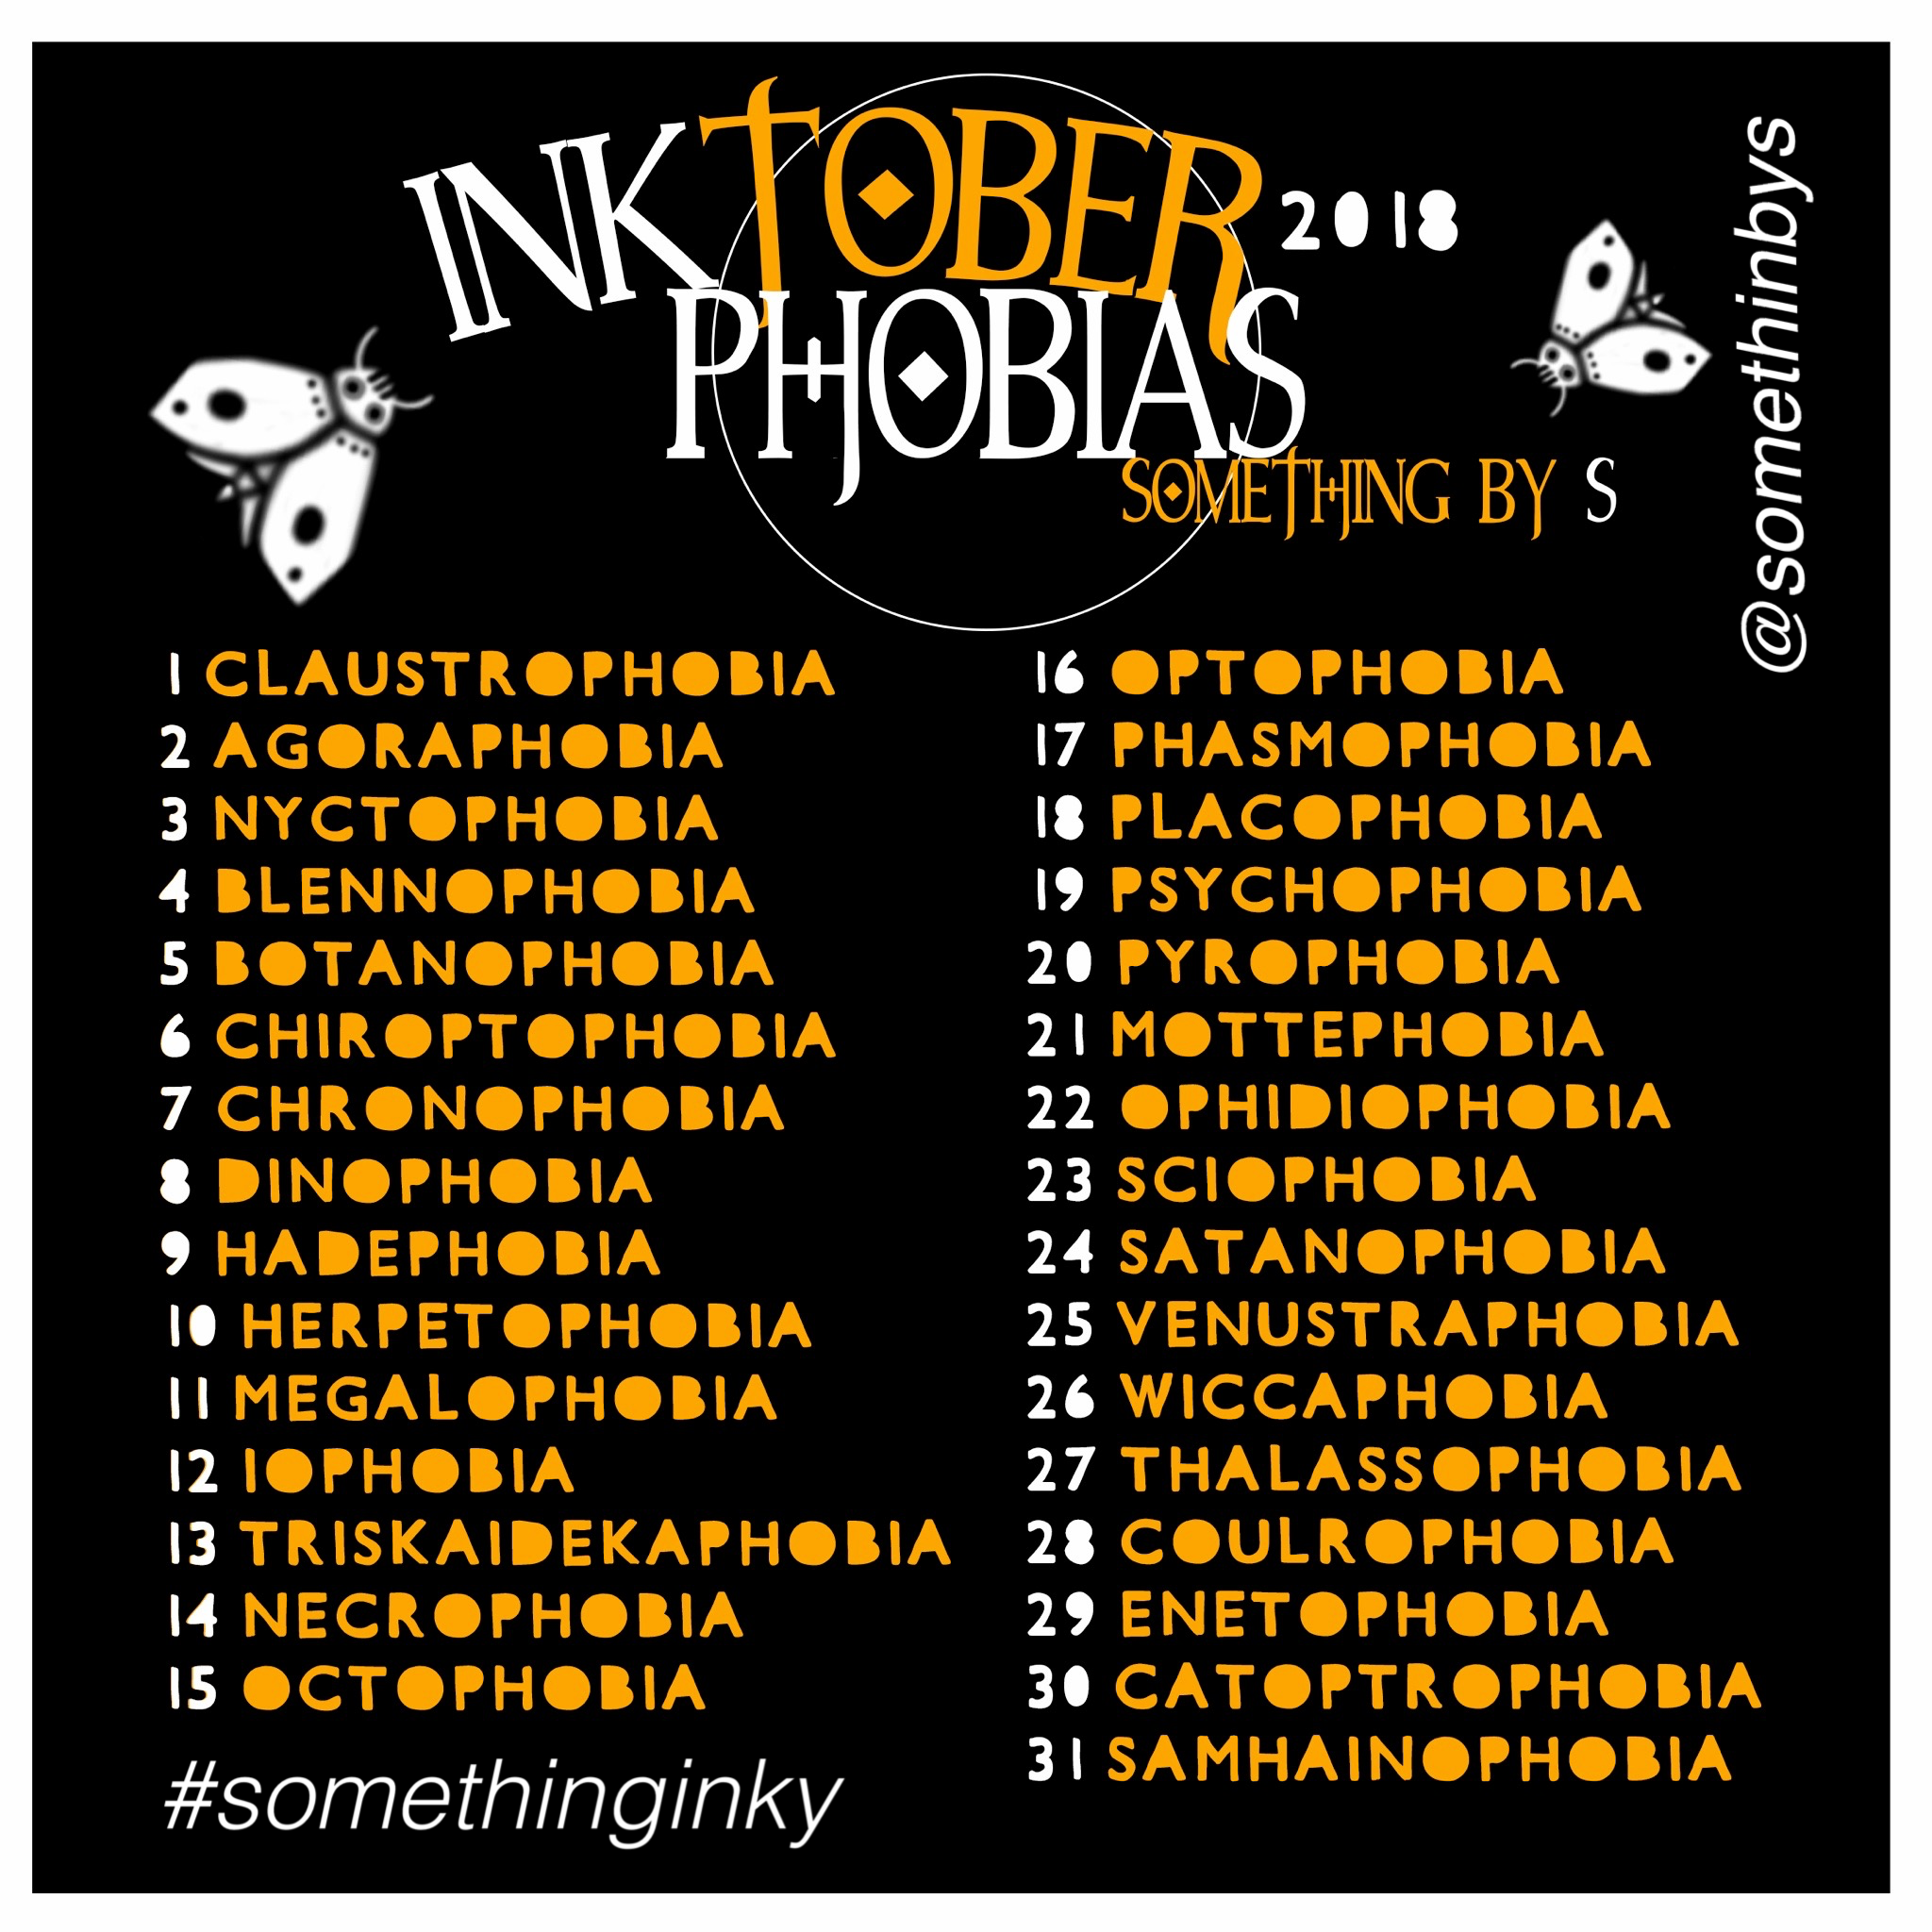 My inktober prompt for 2018! Phobias! Use the hashtag #somethinginky & tag me! #drawingprompts